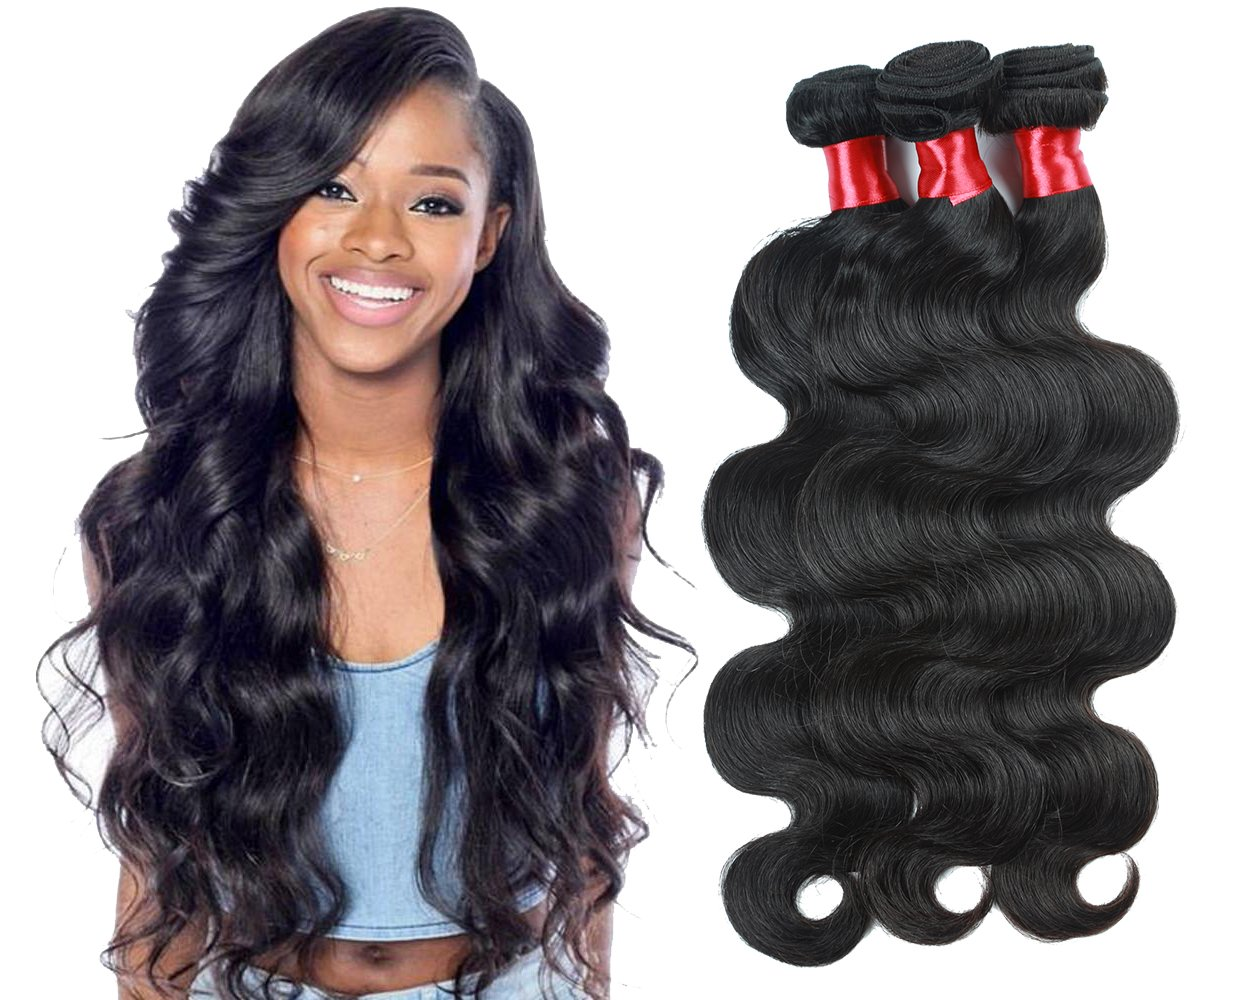 NICE QUEEN Brazilian Body Wave Huamn Hair 4 Bundles 8A Virgin Remy Human Hair Extensions Hair Human Bundles Weave Products(Body Wave,18 20 22 24 Inch)